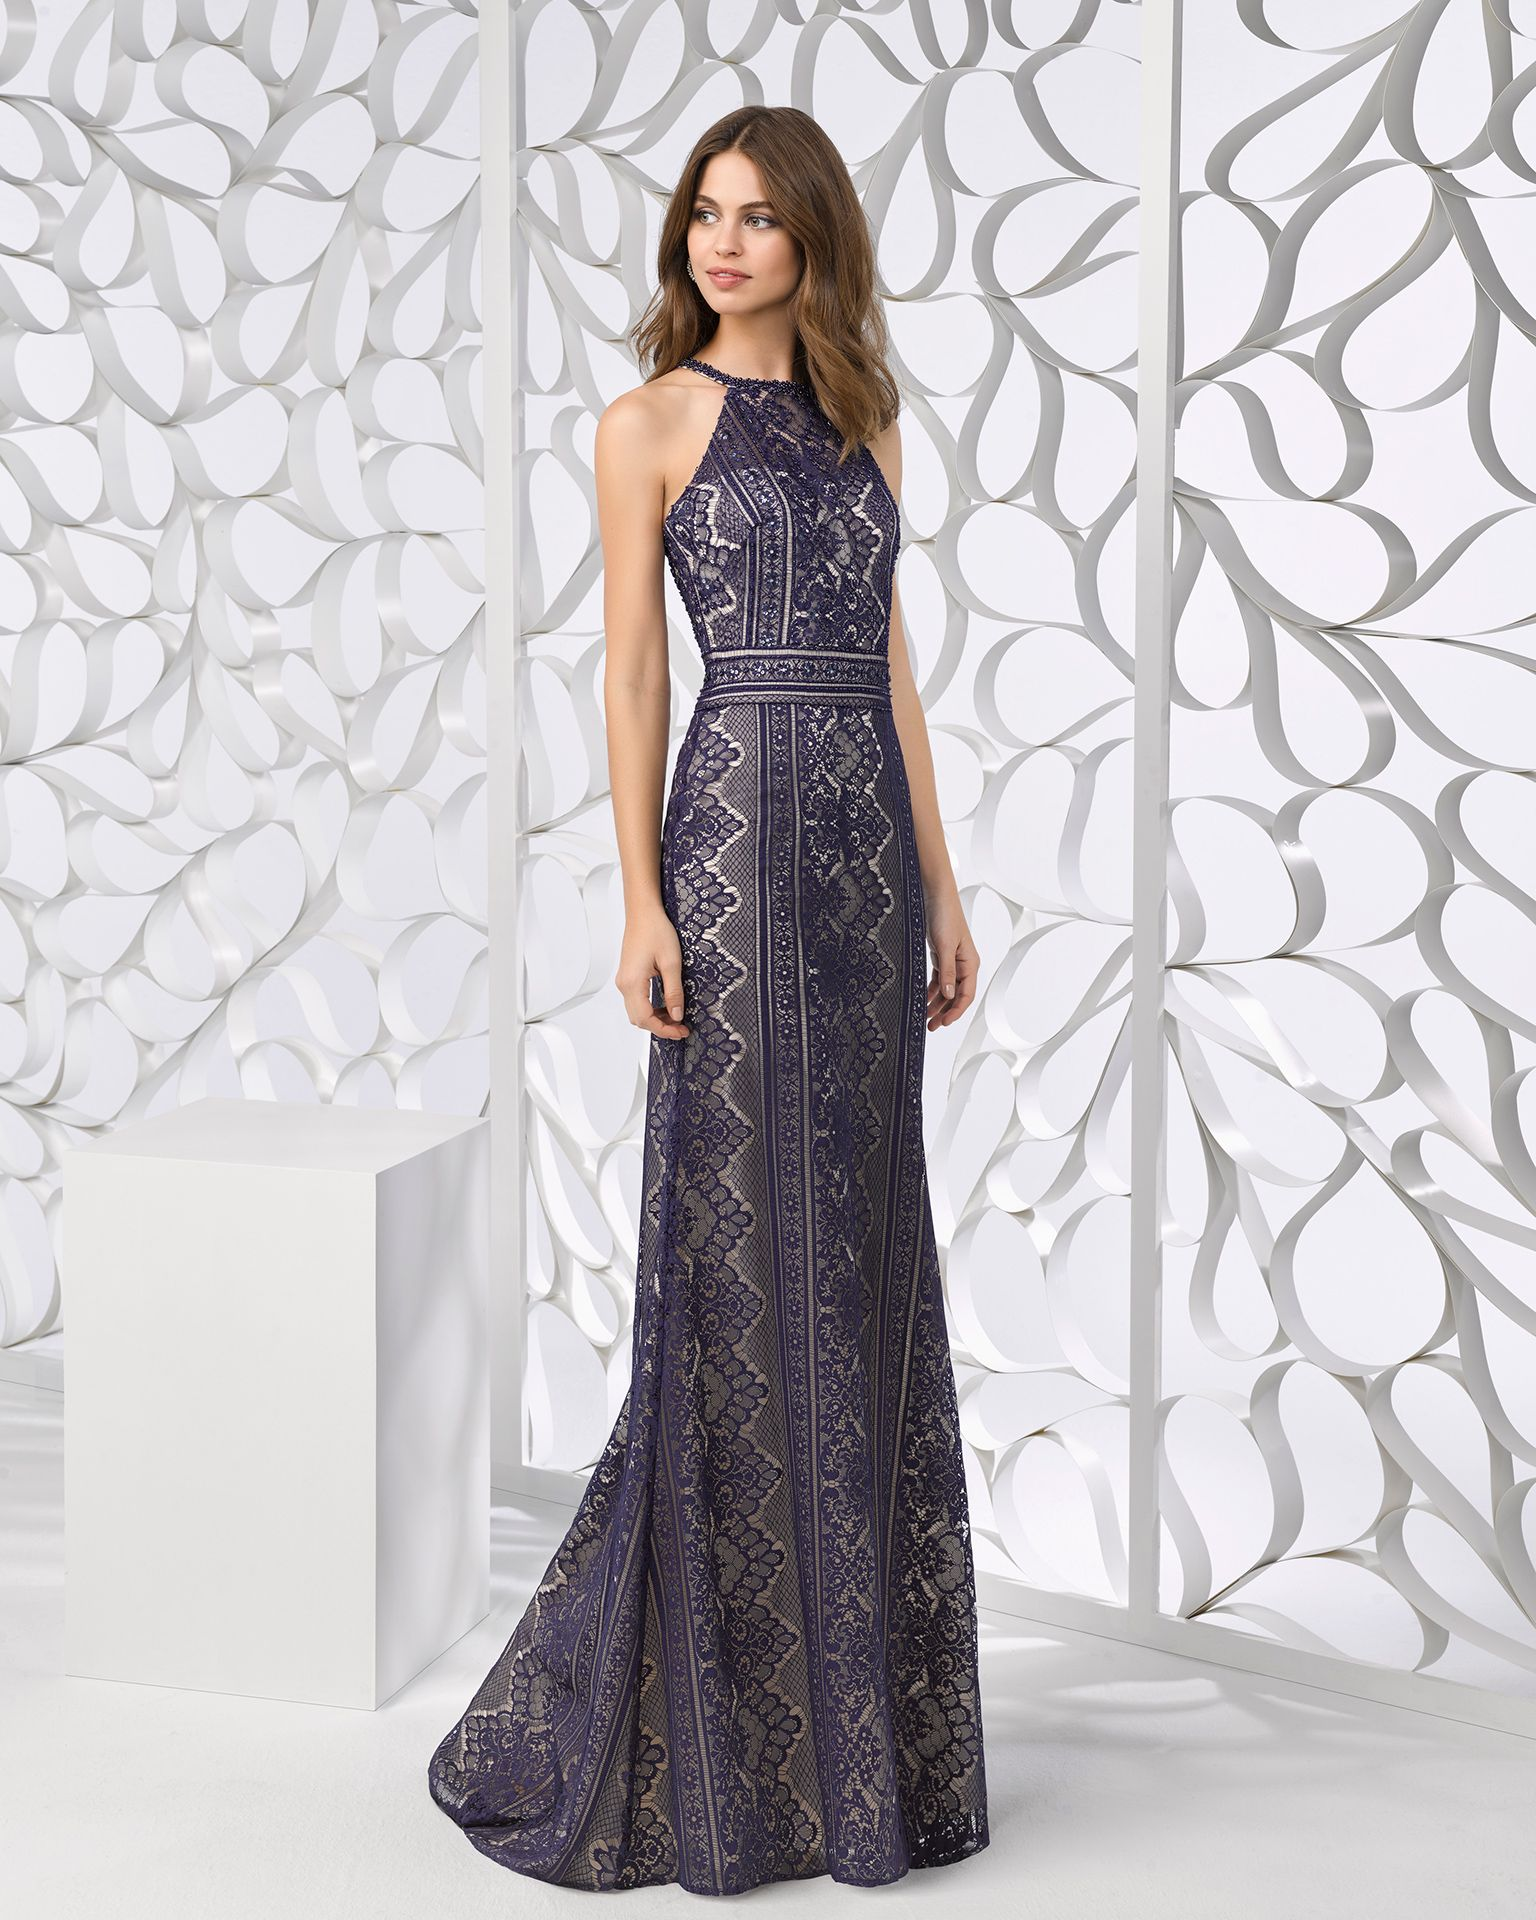 050138024ec Long beaded lace cocktail dress with shawl and halter neck. Available in  red and navy blue nude. 2018 FIESTA AIRE BARCELONA Collection.